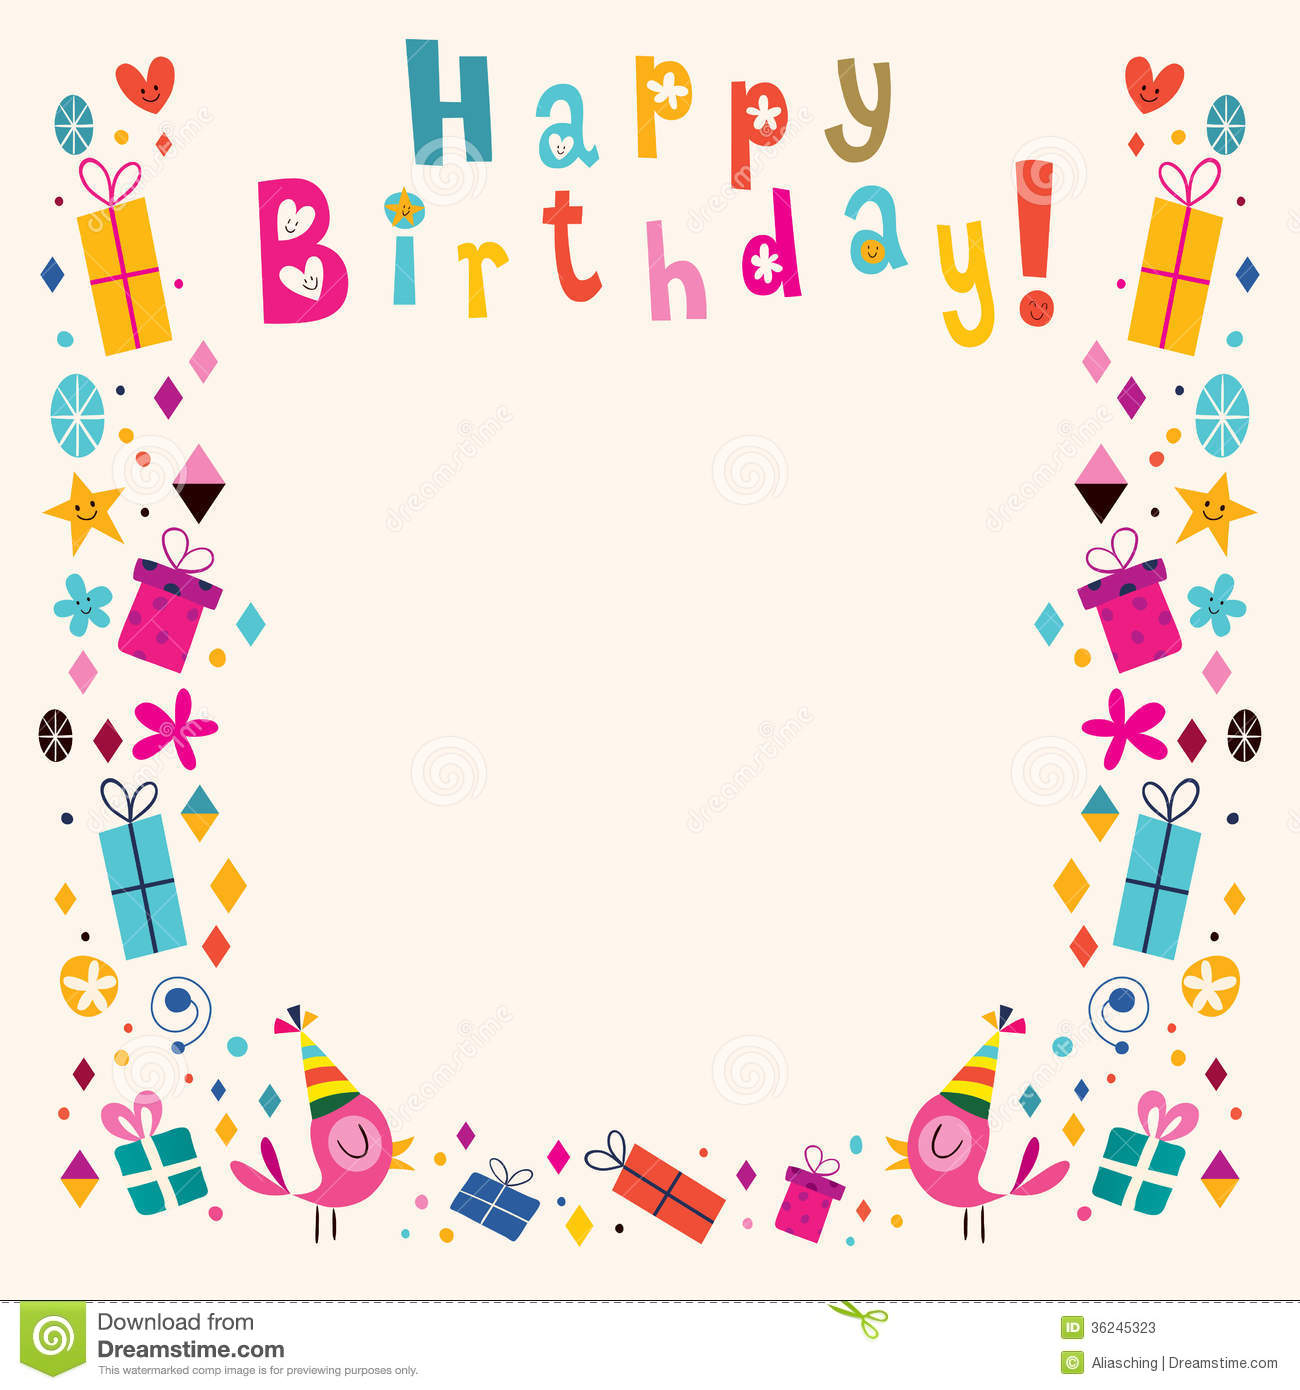 birthday border png ; bb1c2f53cb1b61fbad3c2a8720ac1a8e_happy-birthday-frame-clipart-png-collection-happy-birthday-frame-clipart-png_1300-1390